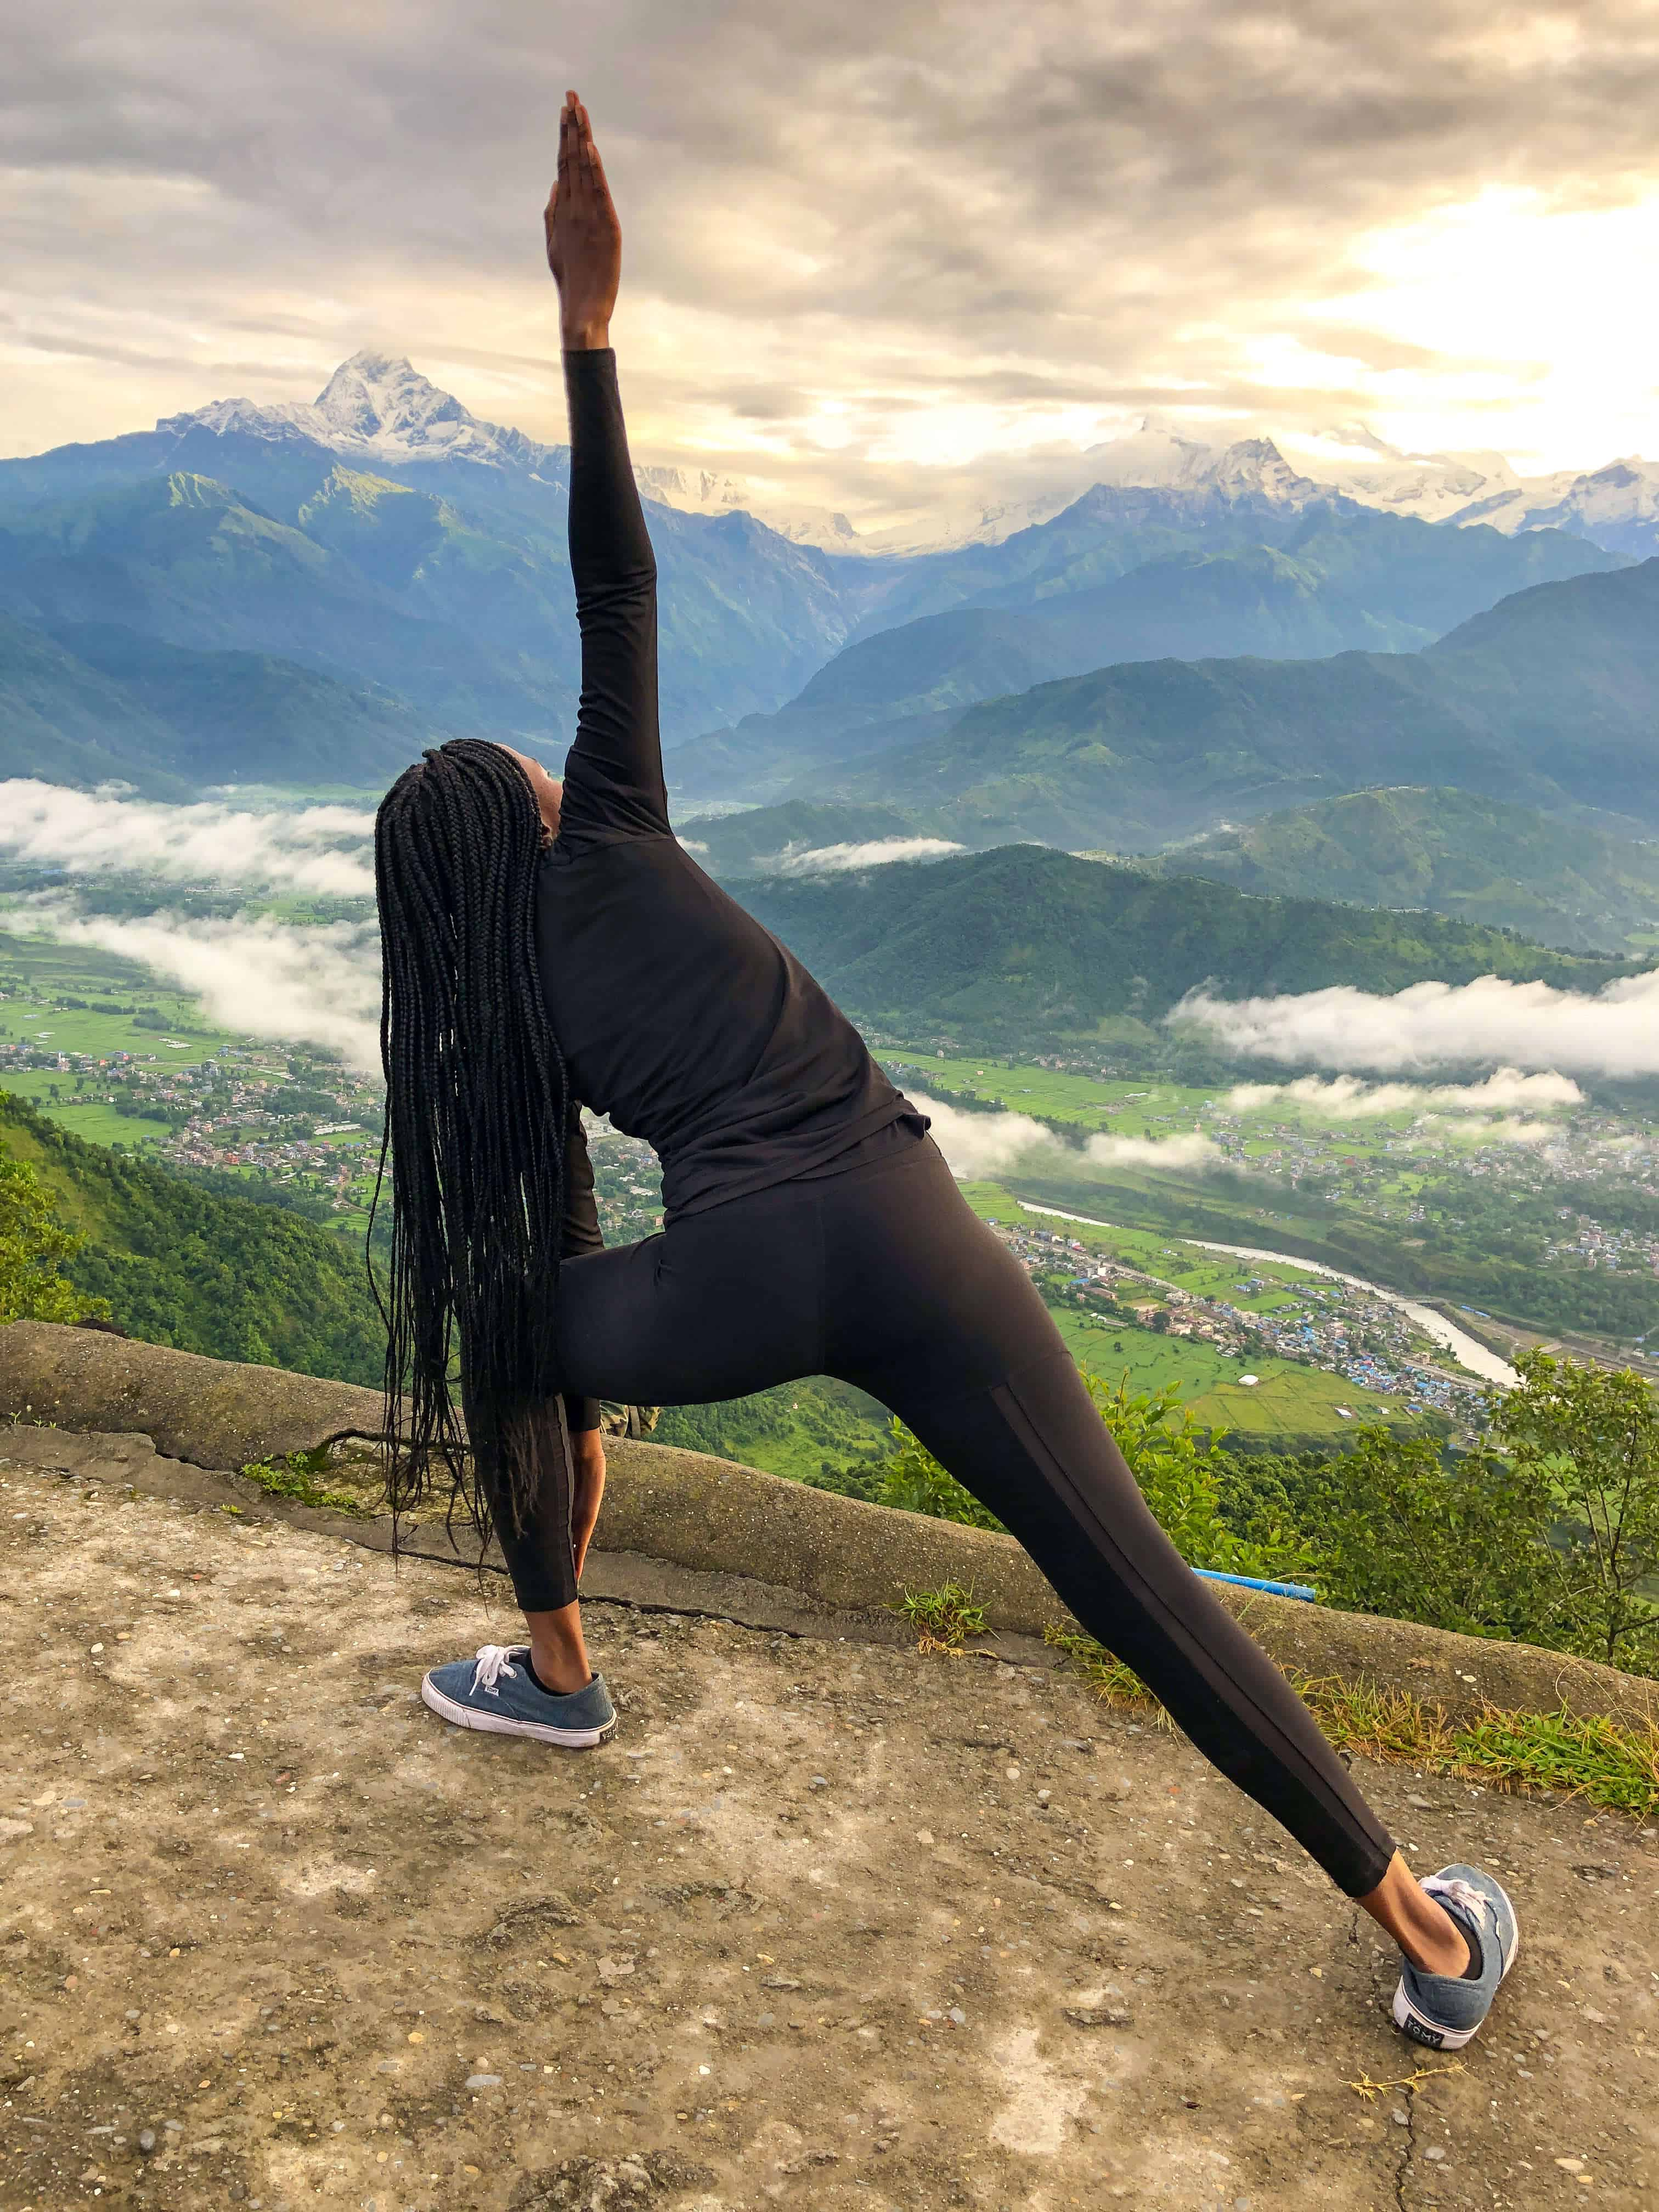 Triangle pose, yoga, at sunrise with a view of Annapurna peaks in Sarangkot, Nepal